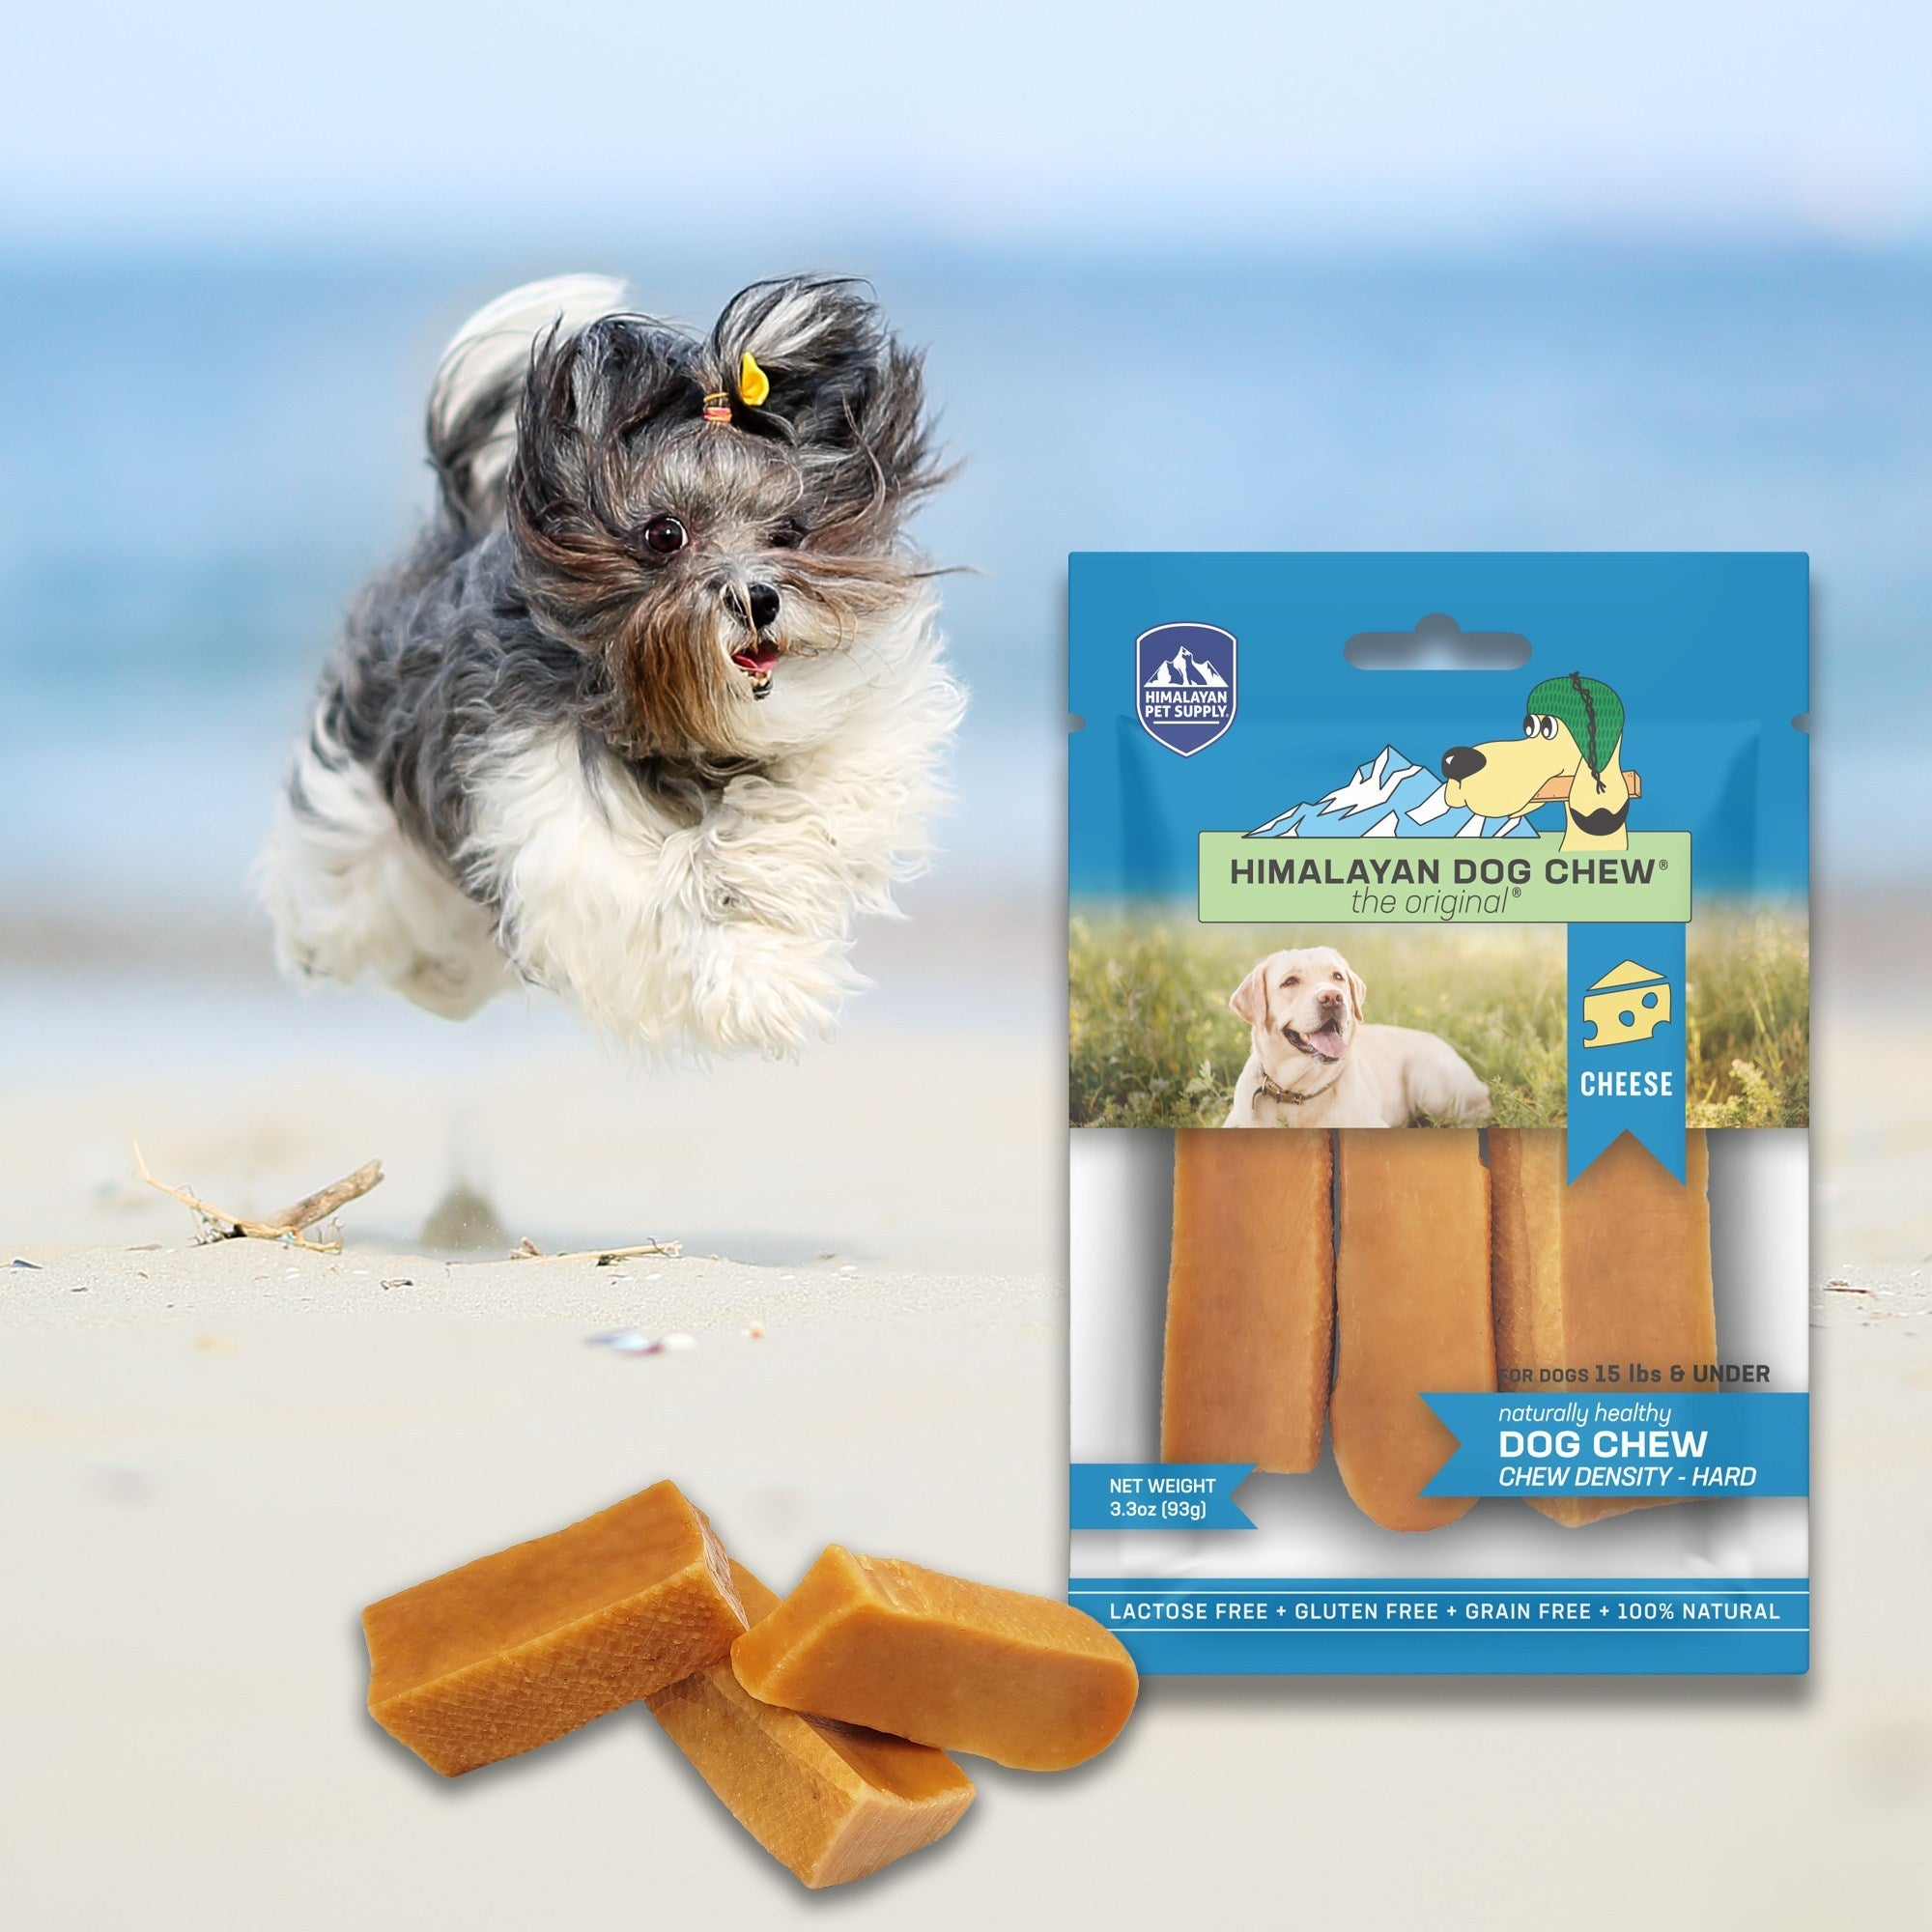 Healthy /& Safe Himalayan Dog Chew Bone Large Long Lasting No Lactose Soy or Grains 100/% Natural Gluten Low Odor for Dogs 45 lbs and Over Protein Rich Stain Free